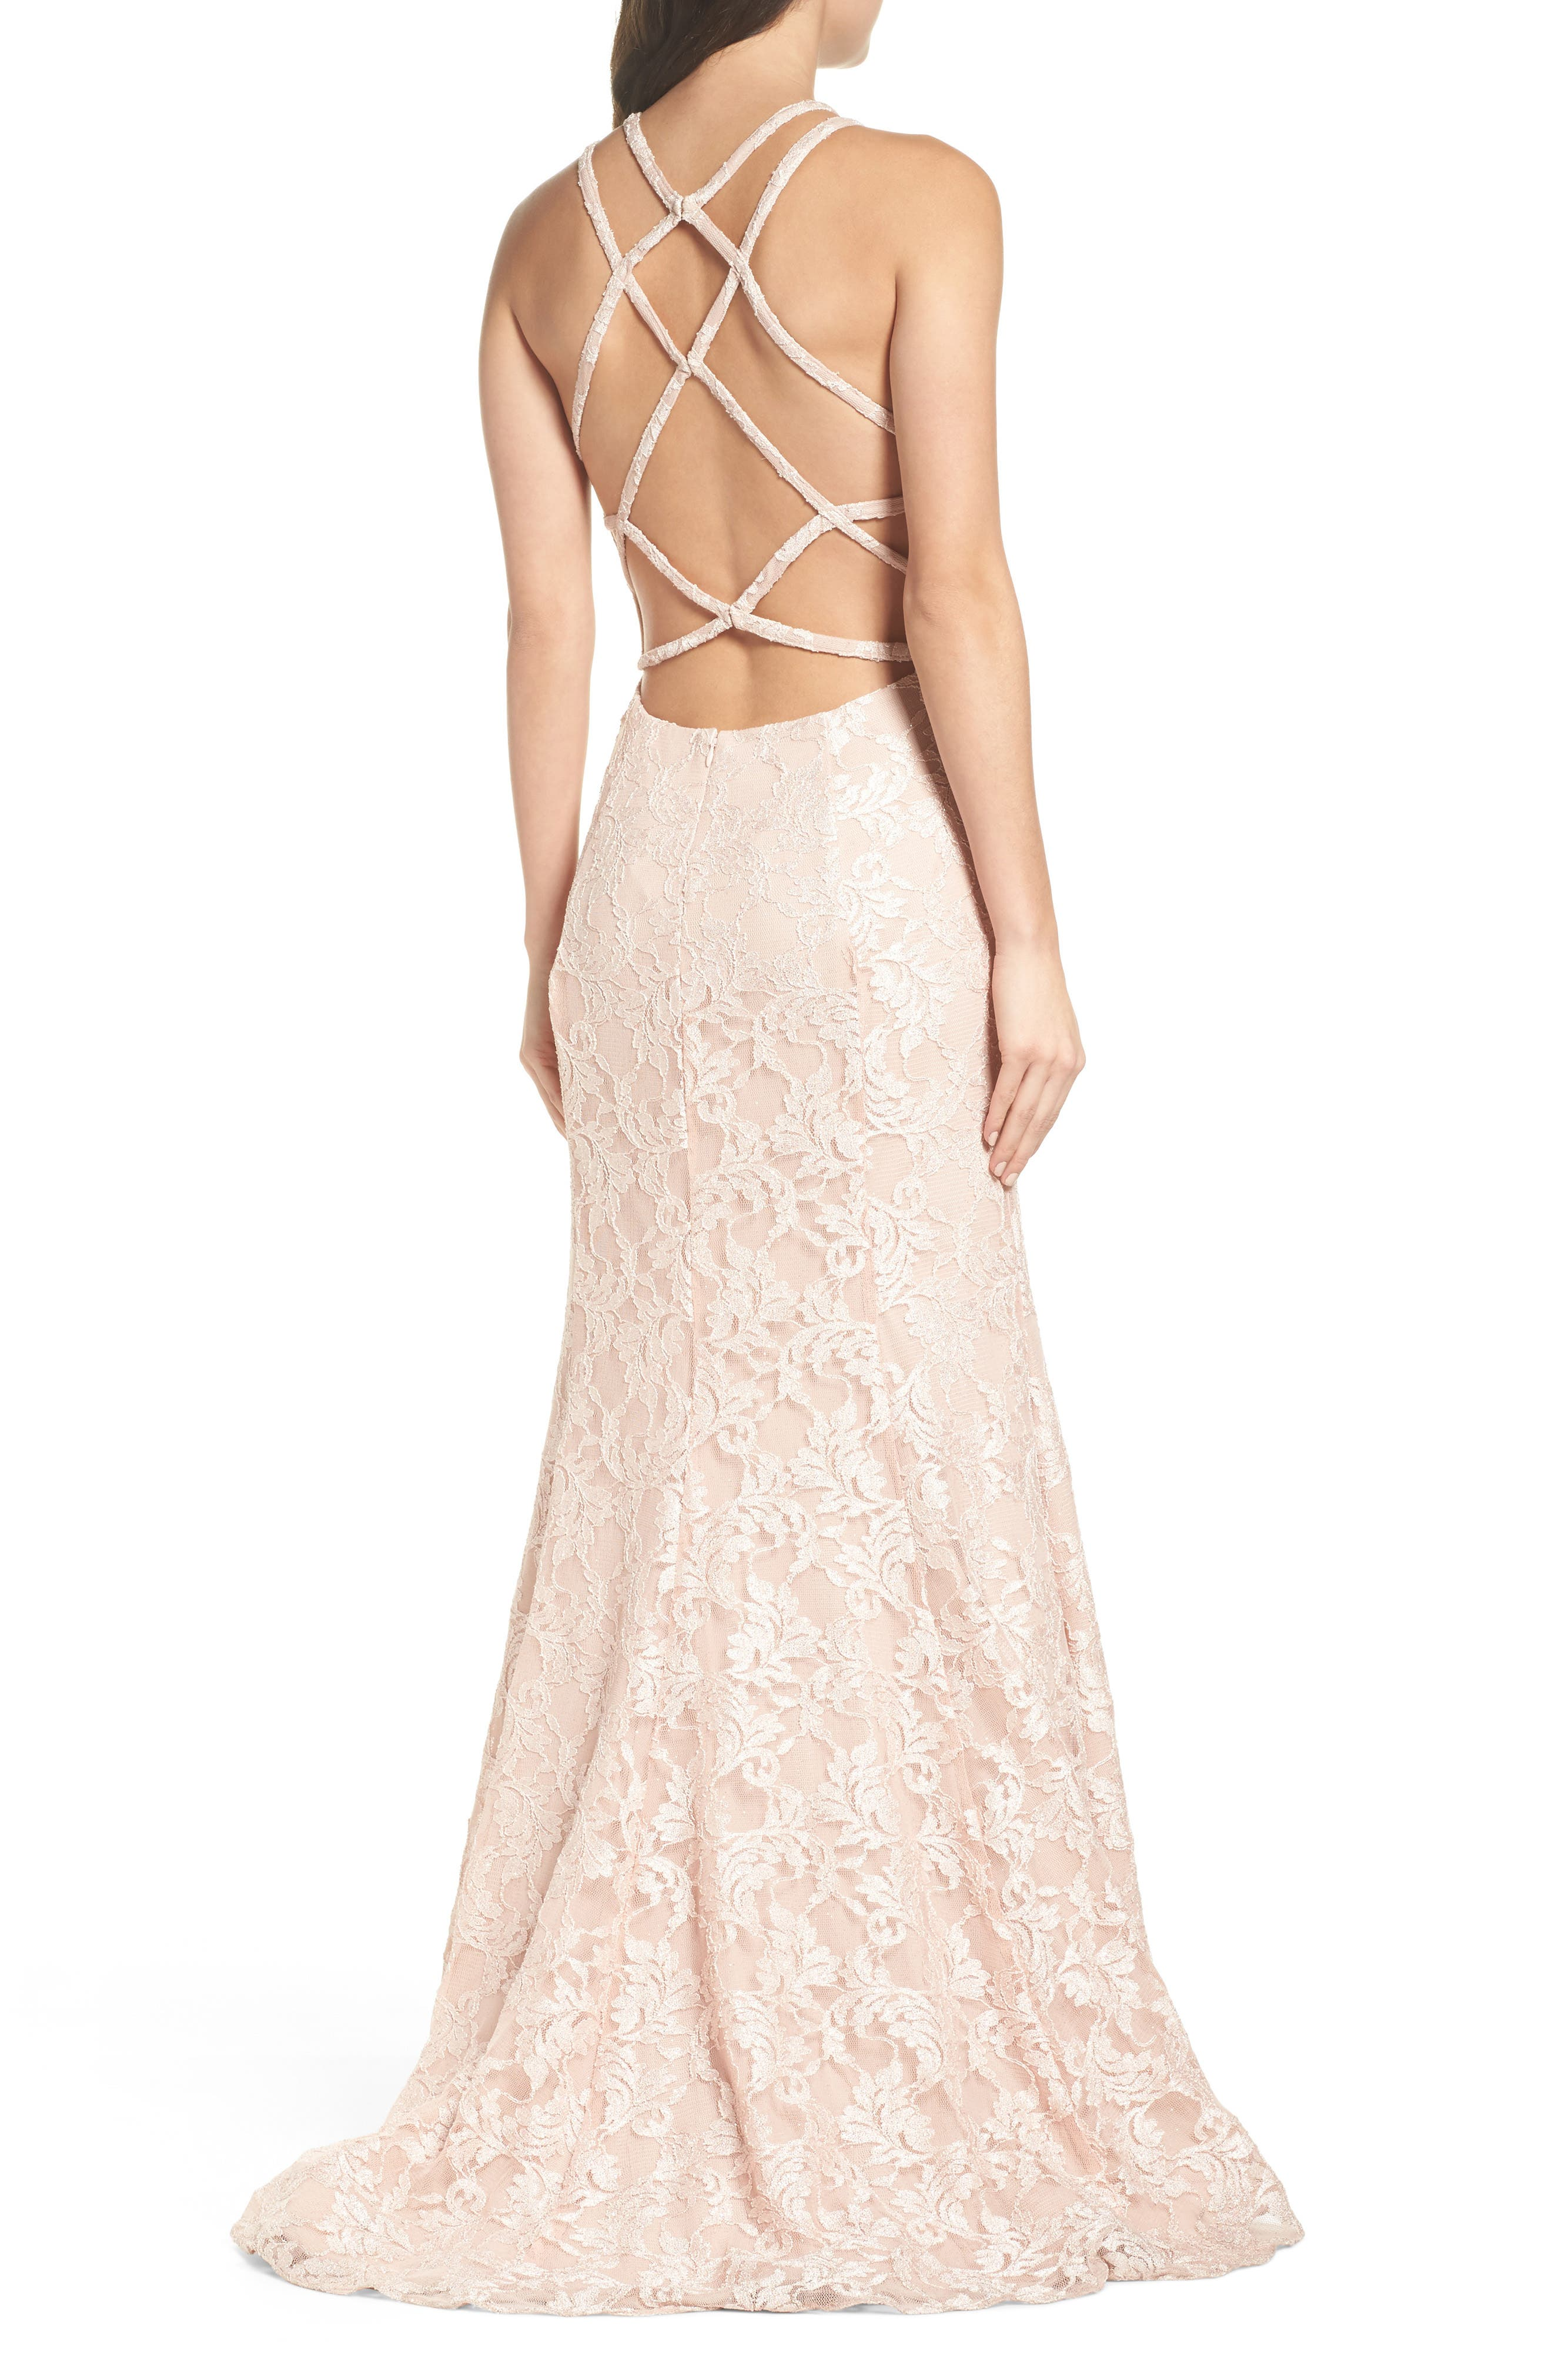 Strappy Lace Mermaid Gown,                             Alternate thumbnail 2, color,                             Blush / Nude